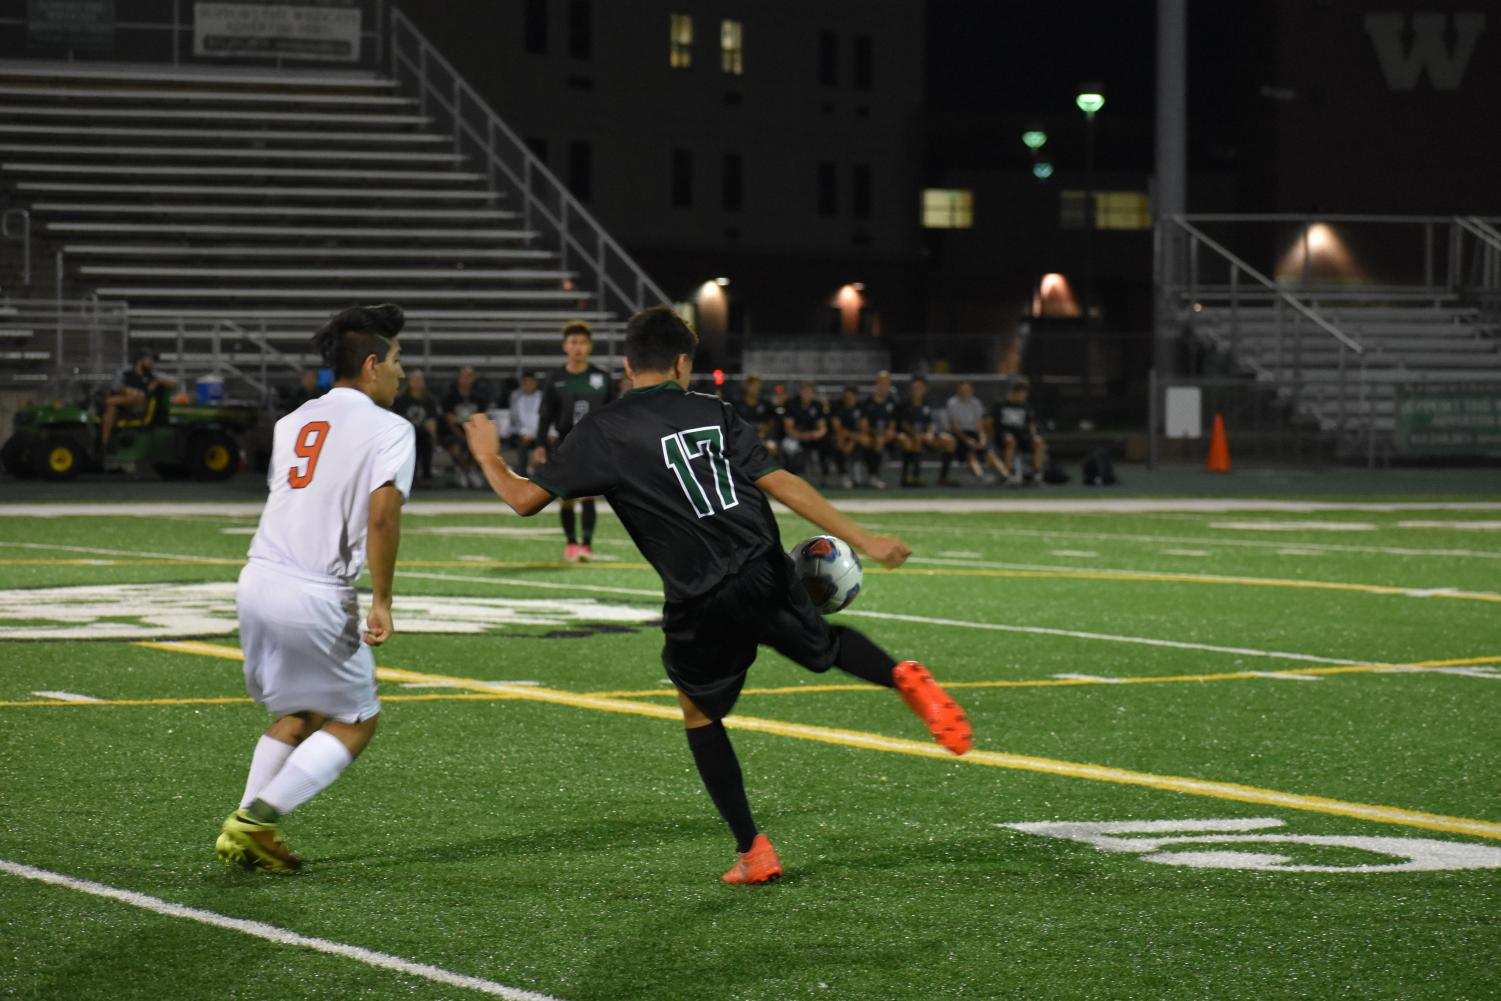 Sophomore Berto Centeno steals the ball from the Romeoville player in their 1-0 victory on Oct. 9.